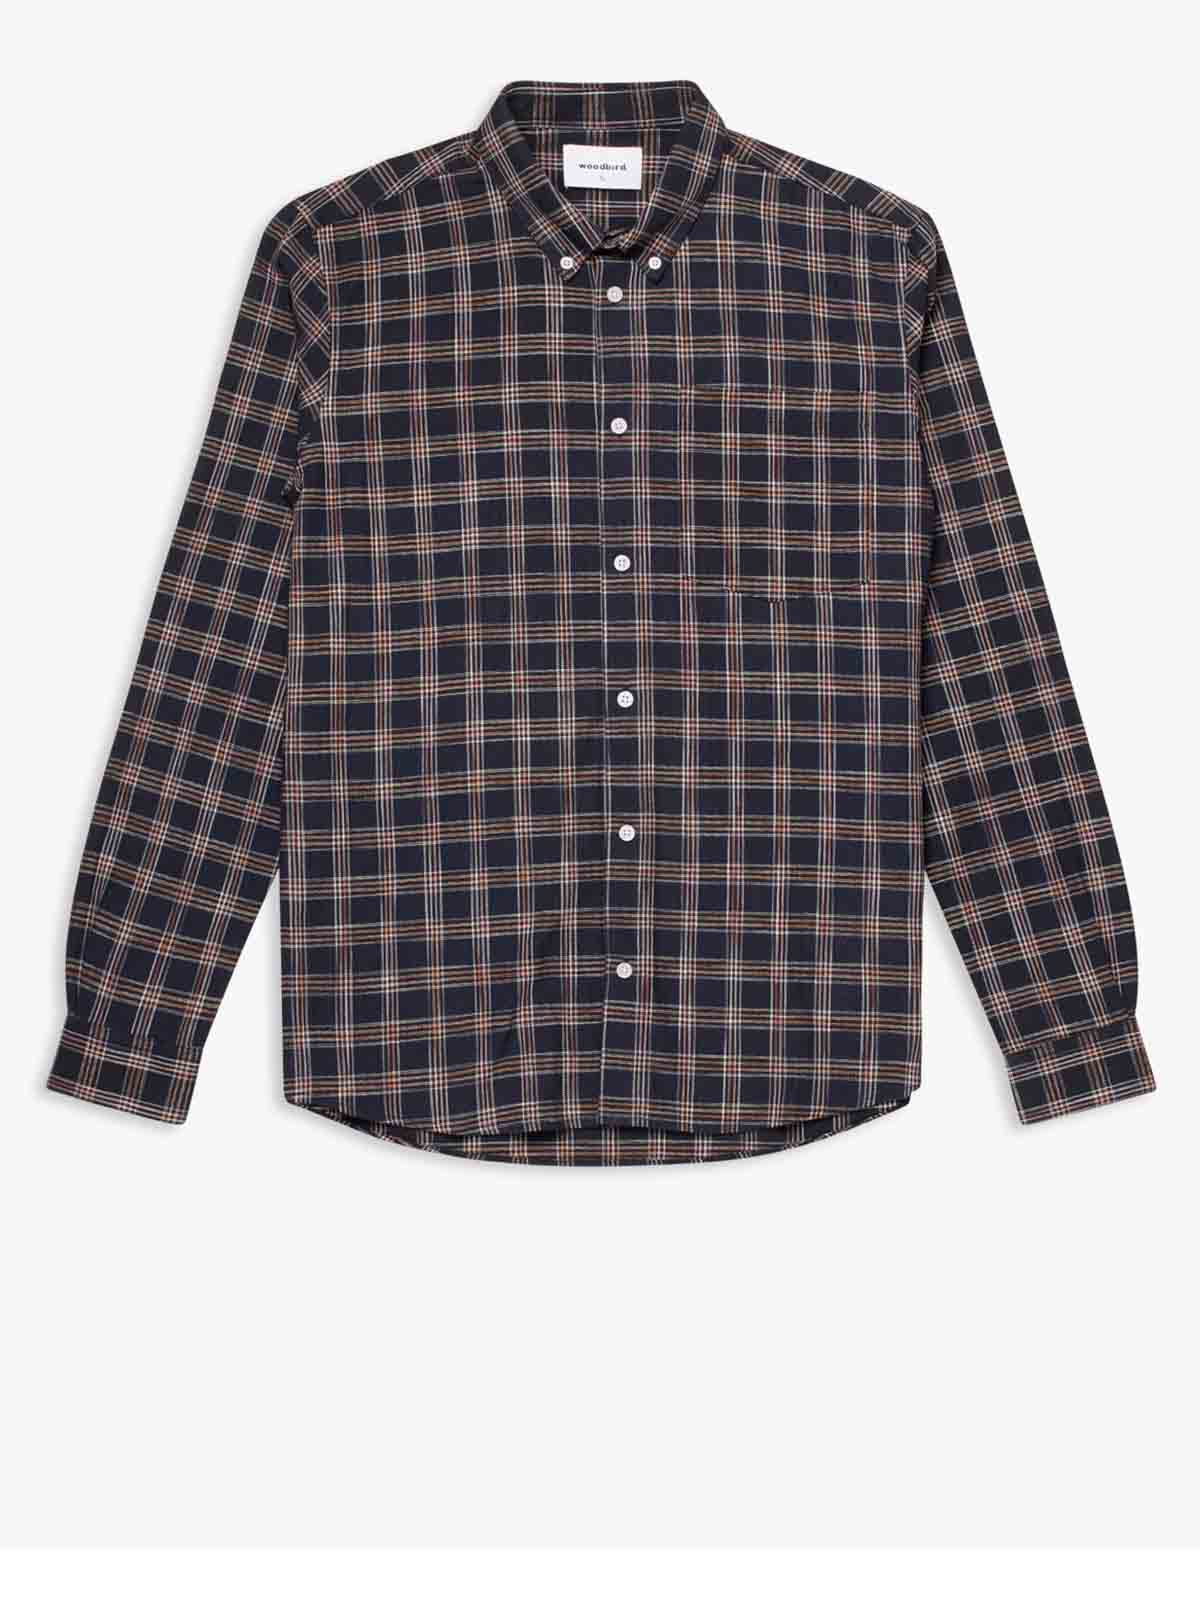 Klarxo Check Shirt - Navy